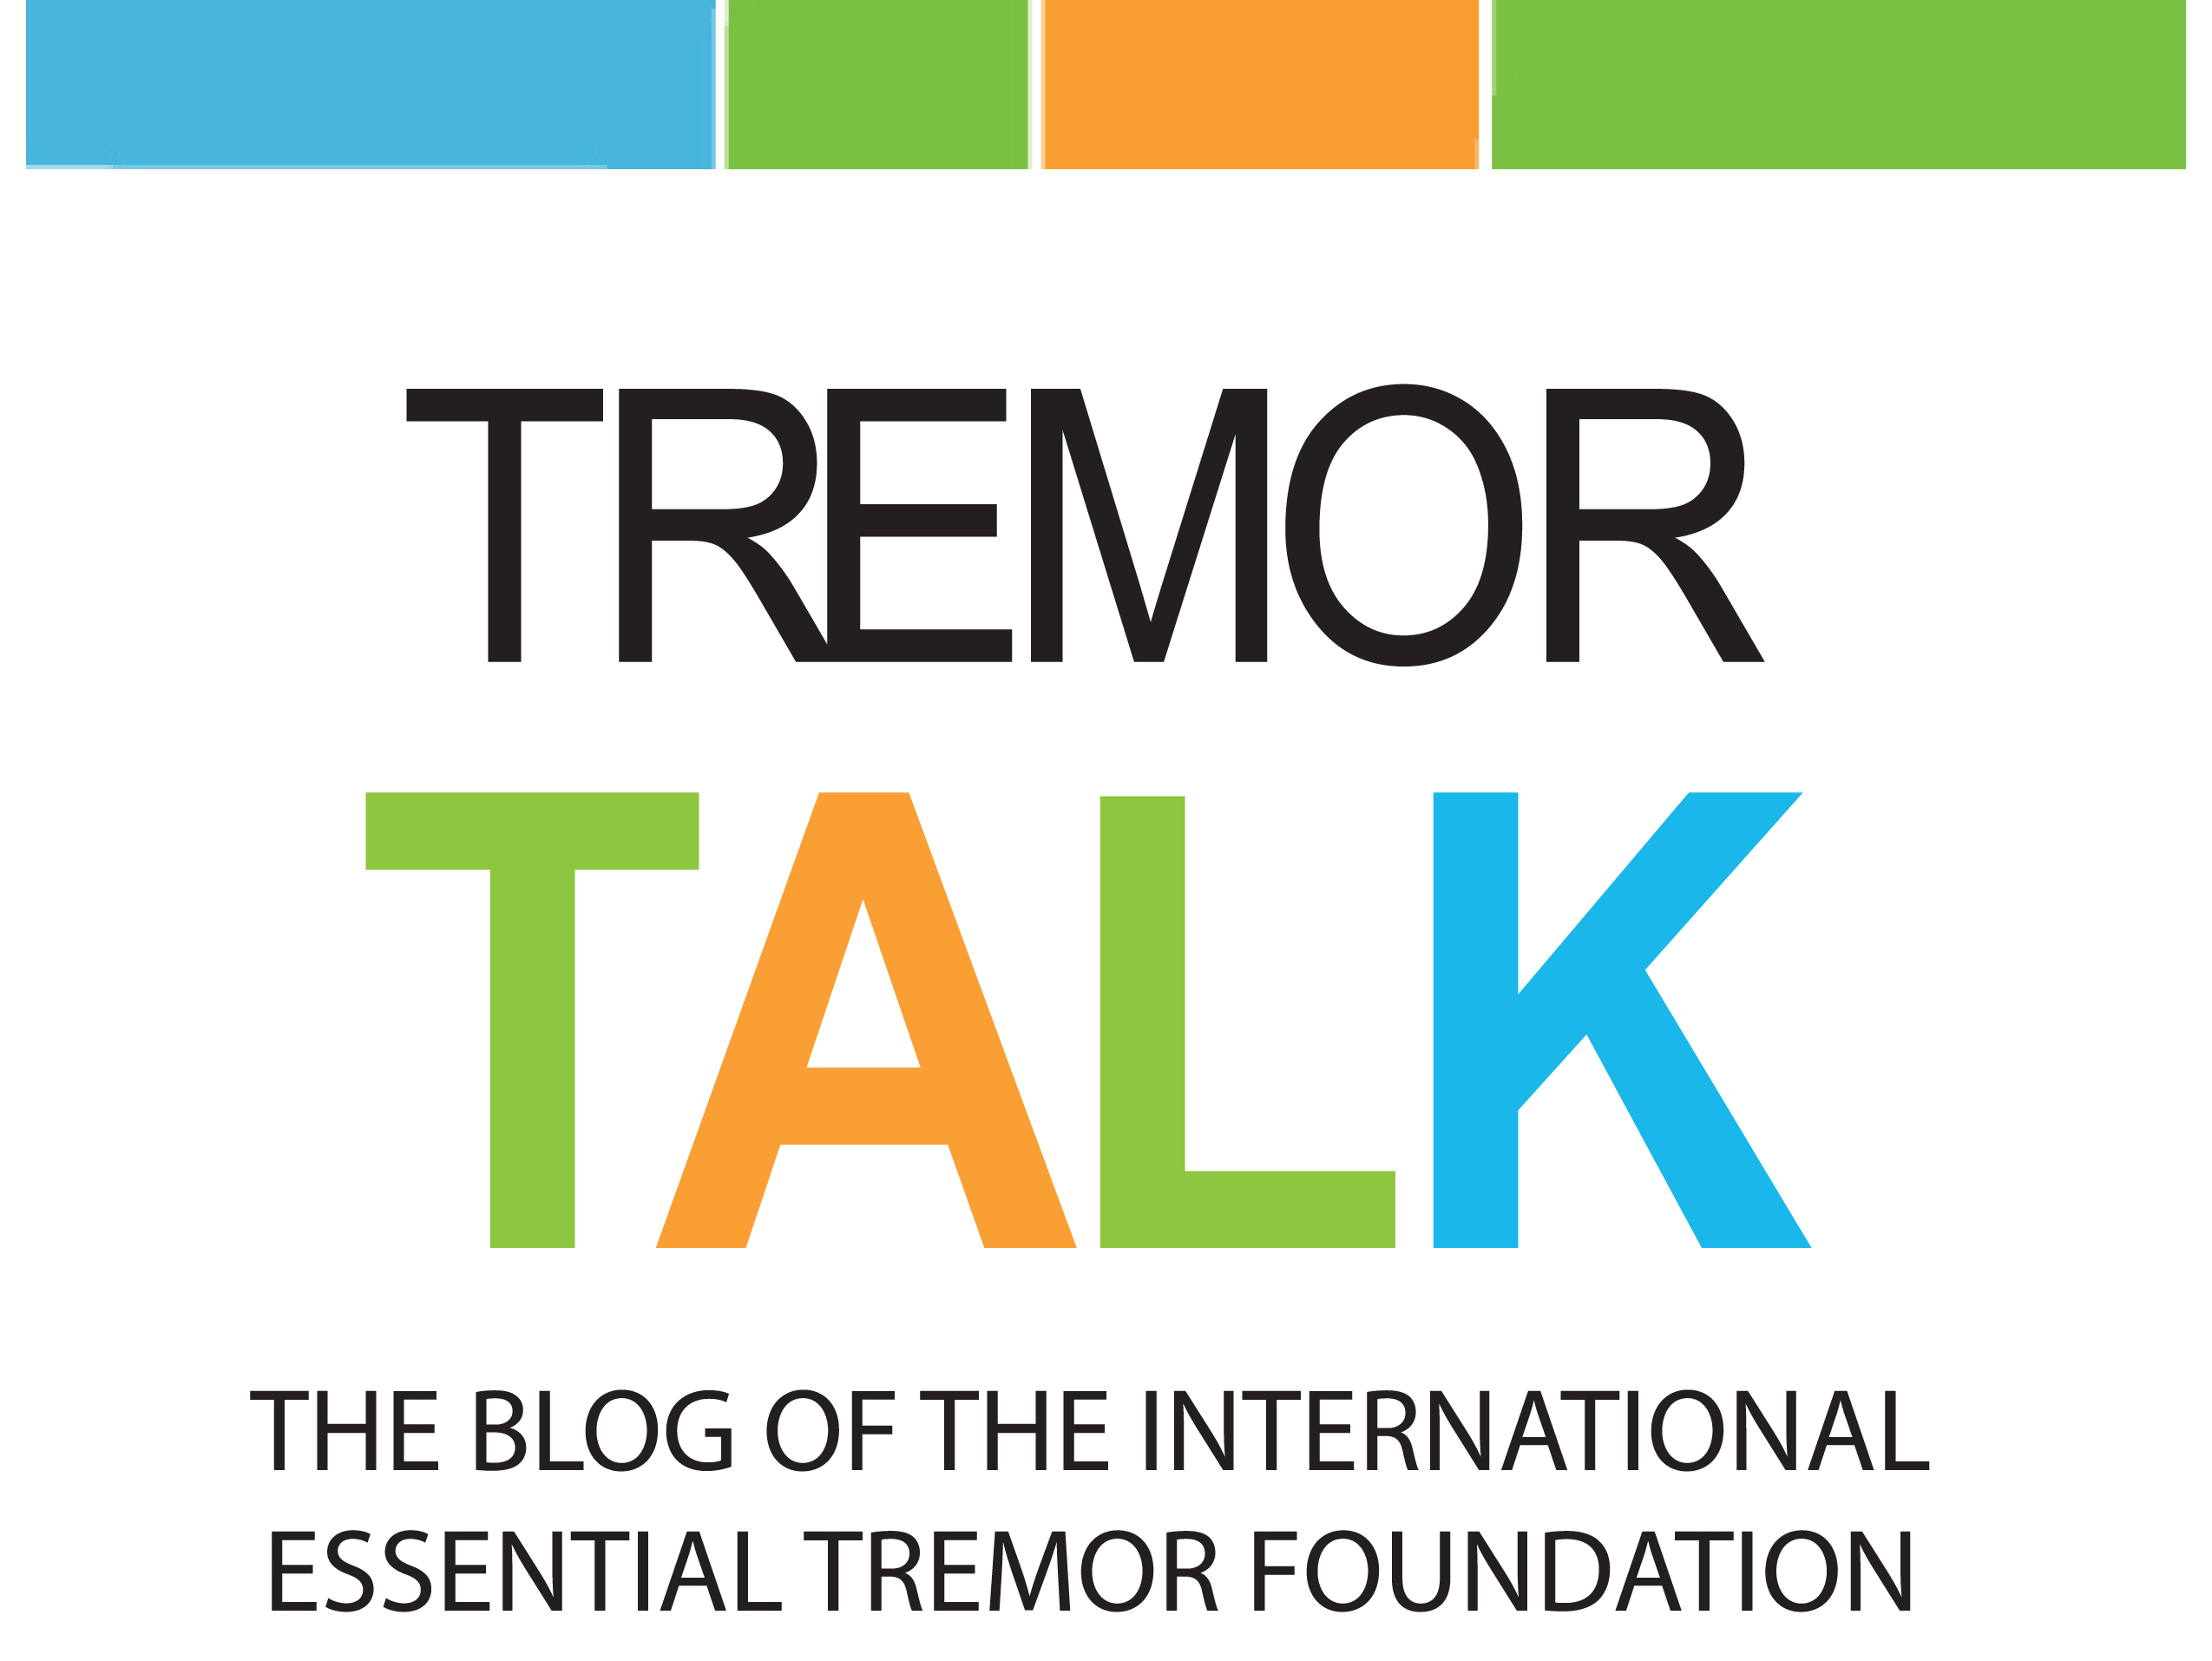 Tremor Talk Blog box